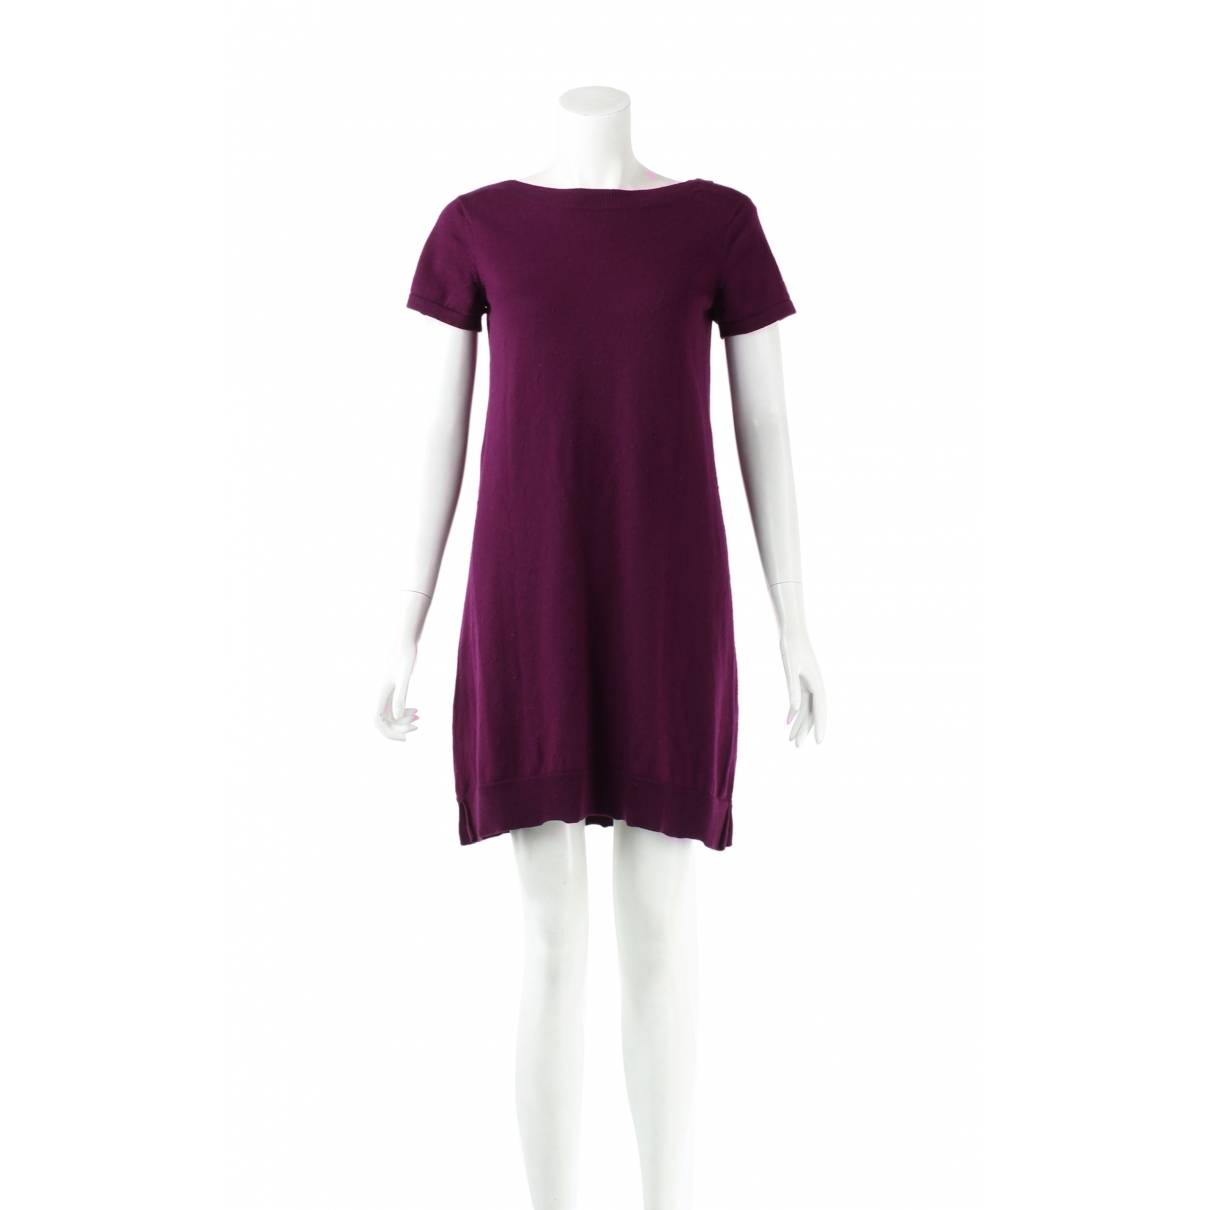 Autre Marque \N Kleid in  Lila Wolle